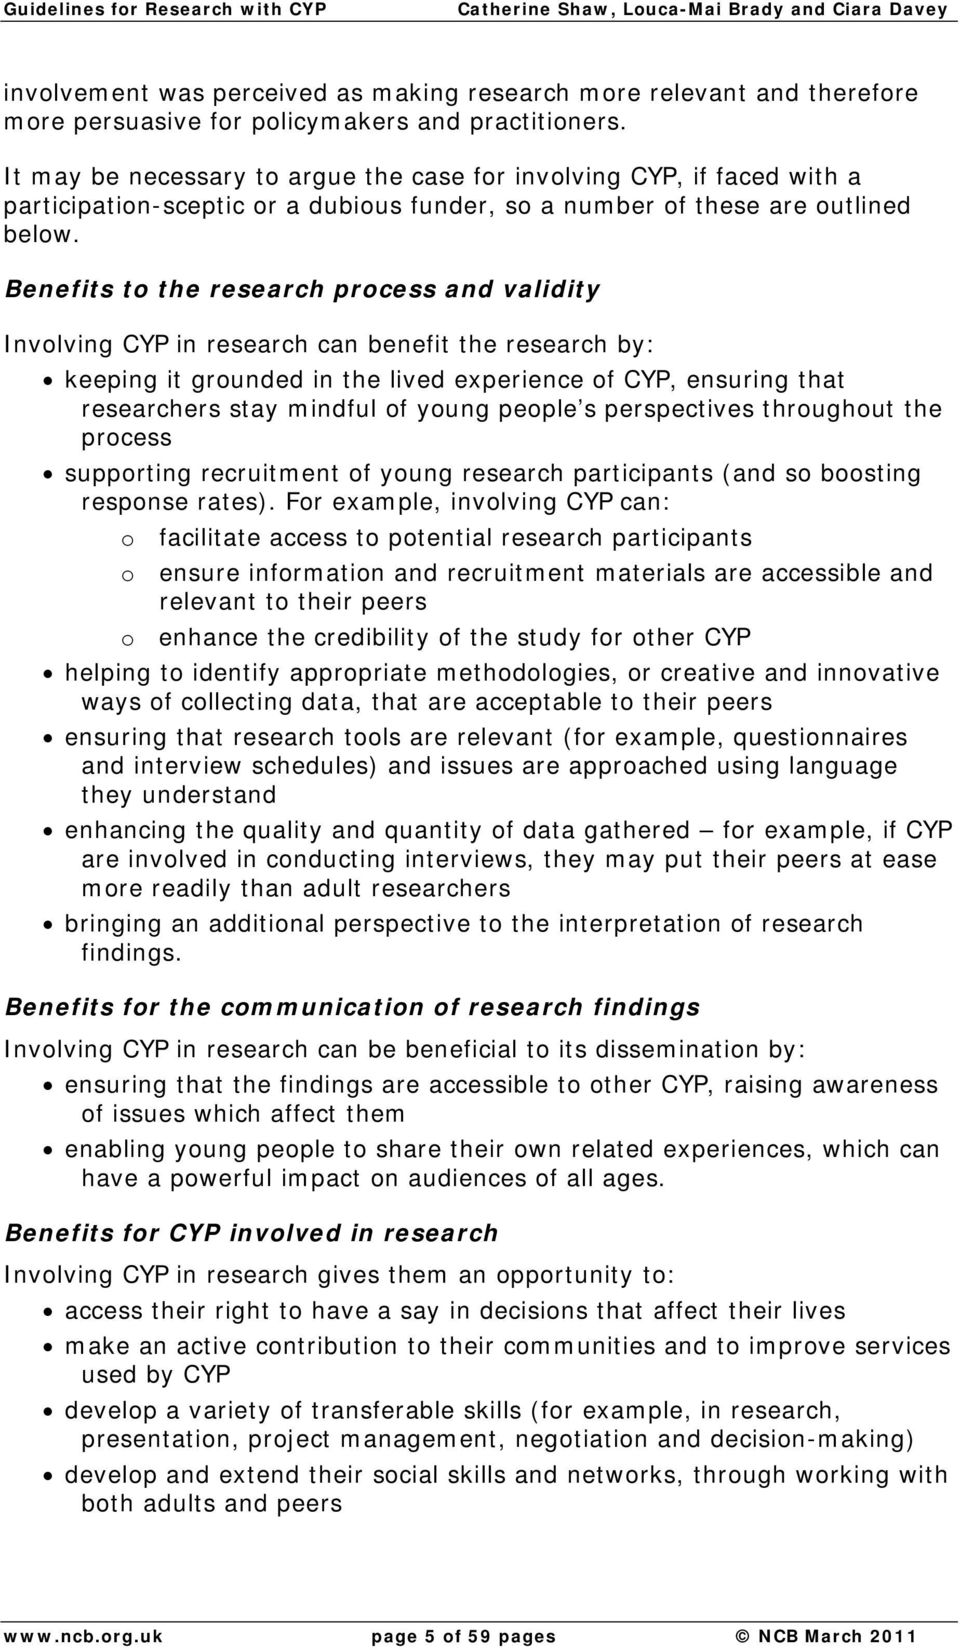 Benefits to the research process and validity Involving CYP in research can benefit the research by: keeping it grounded in the lived experience of CYP, ensuring that researchers stay mindful of